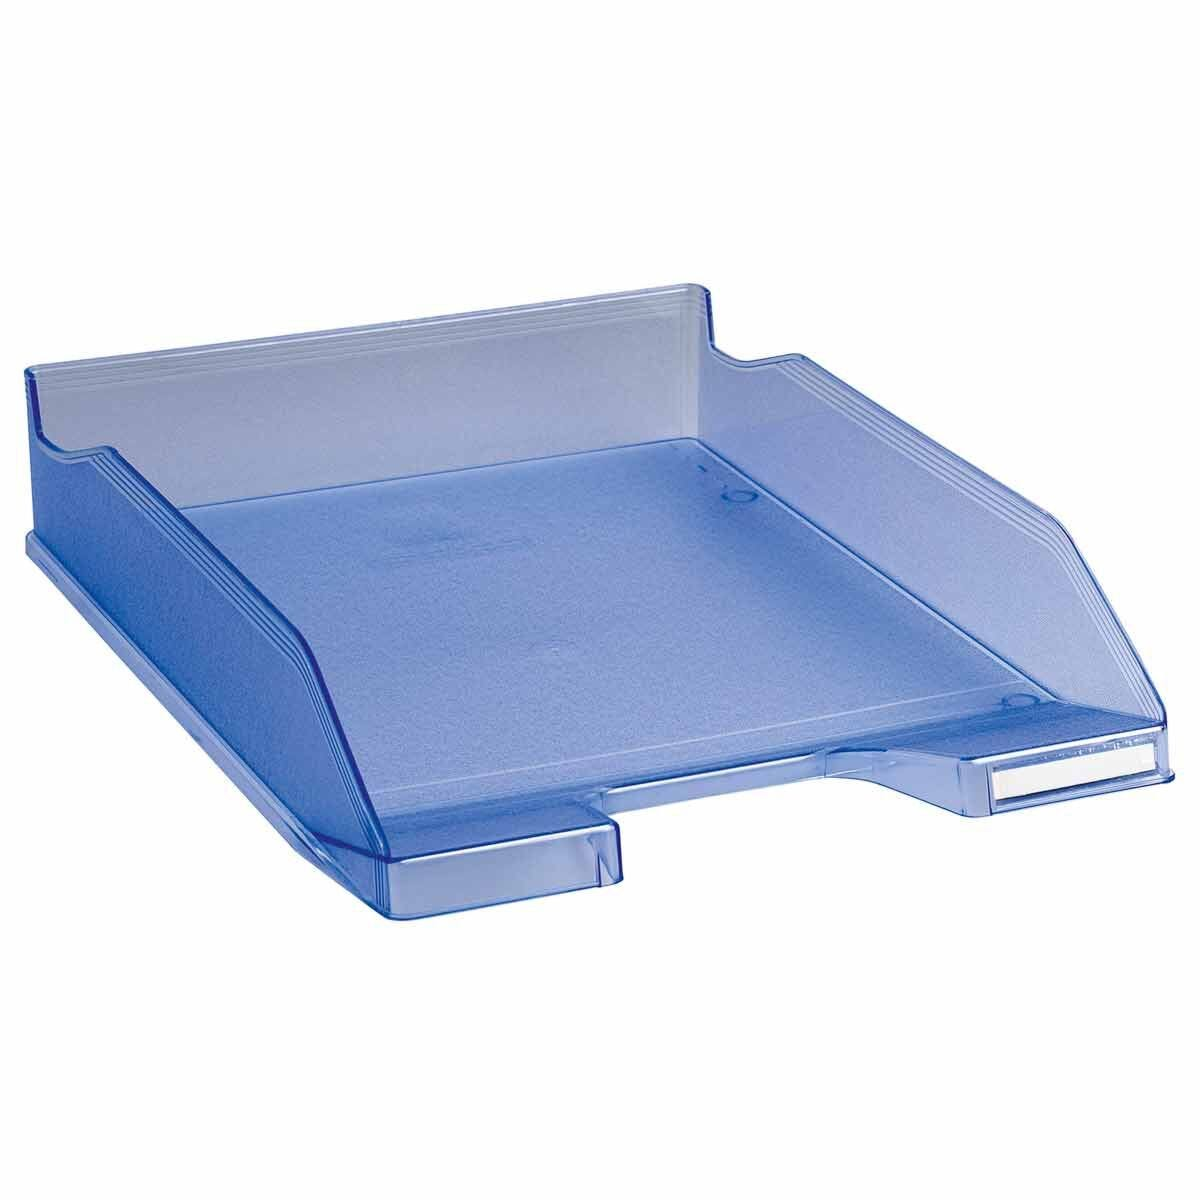 Exacompta Office Letter Tray Midi Combo Pack of 6 Translucent Matte ice blue